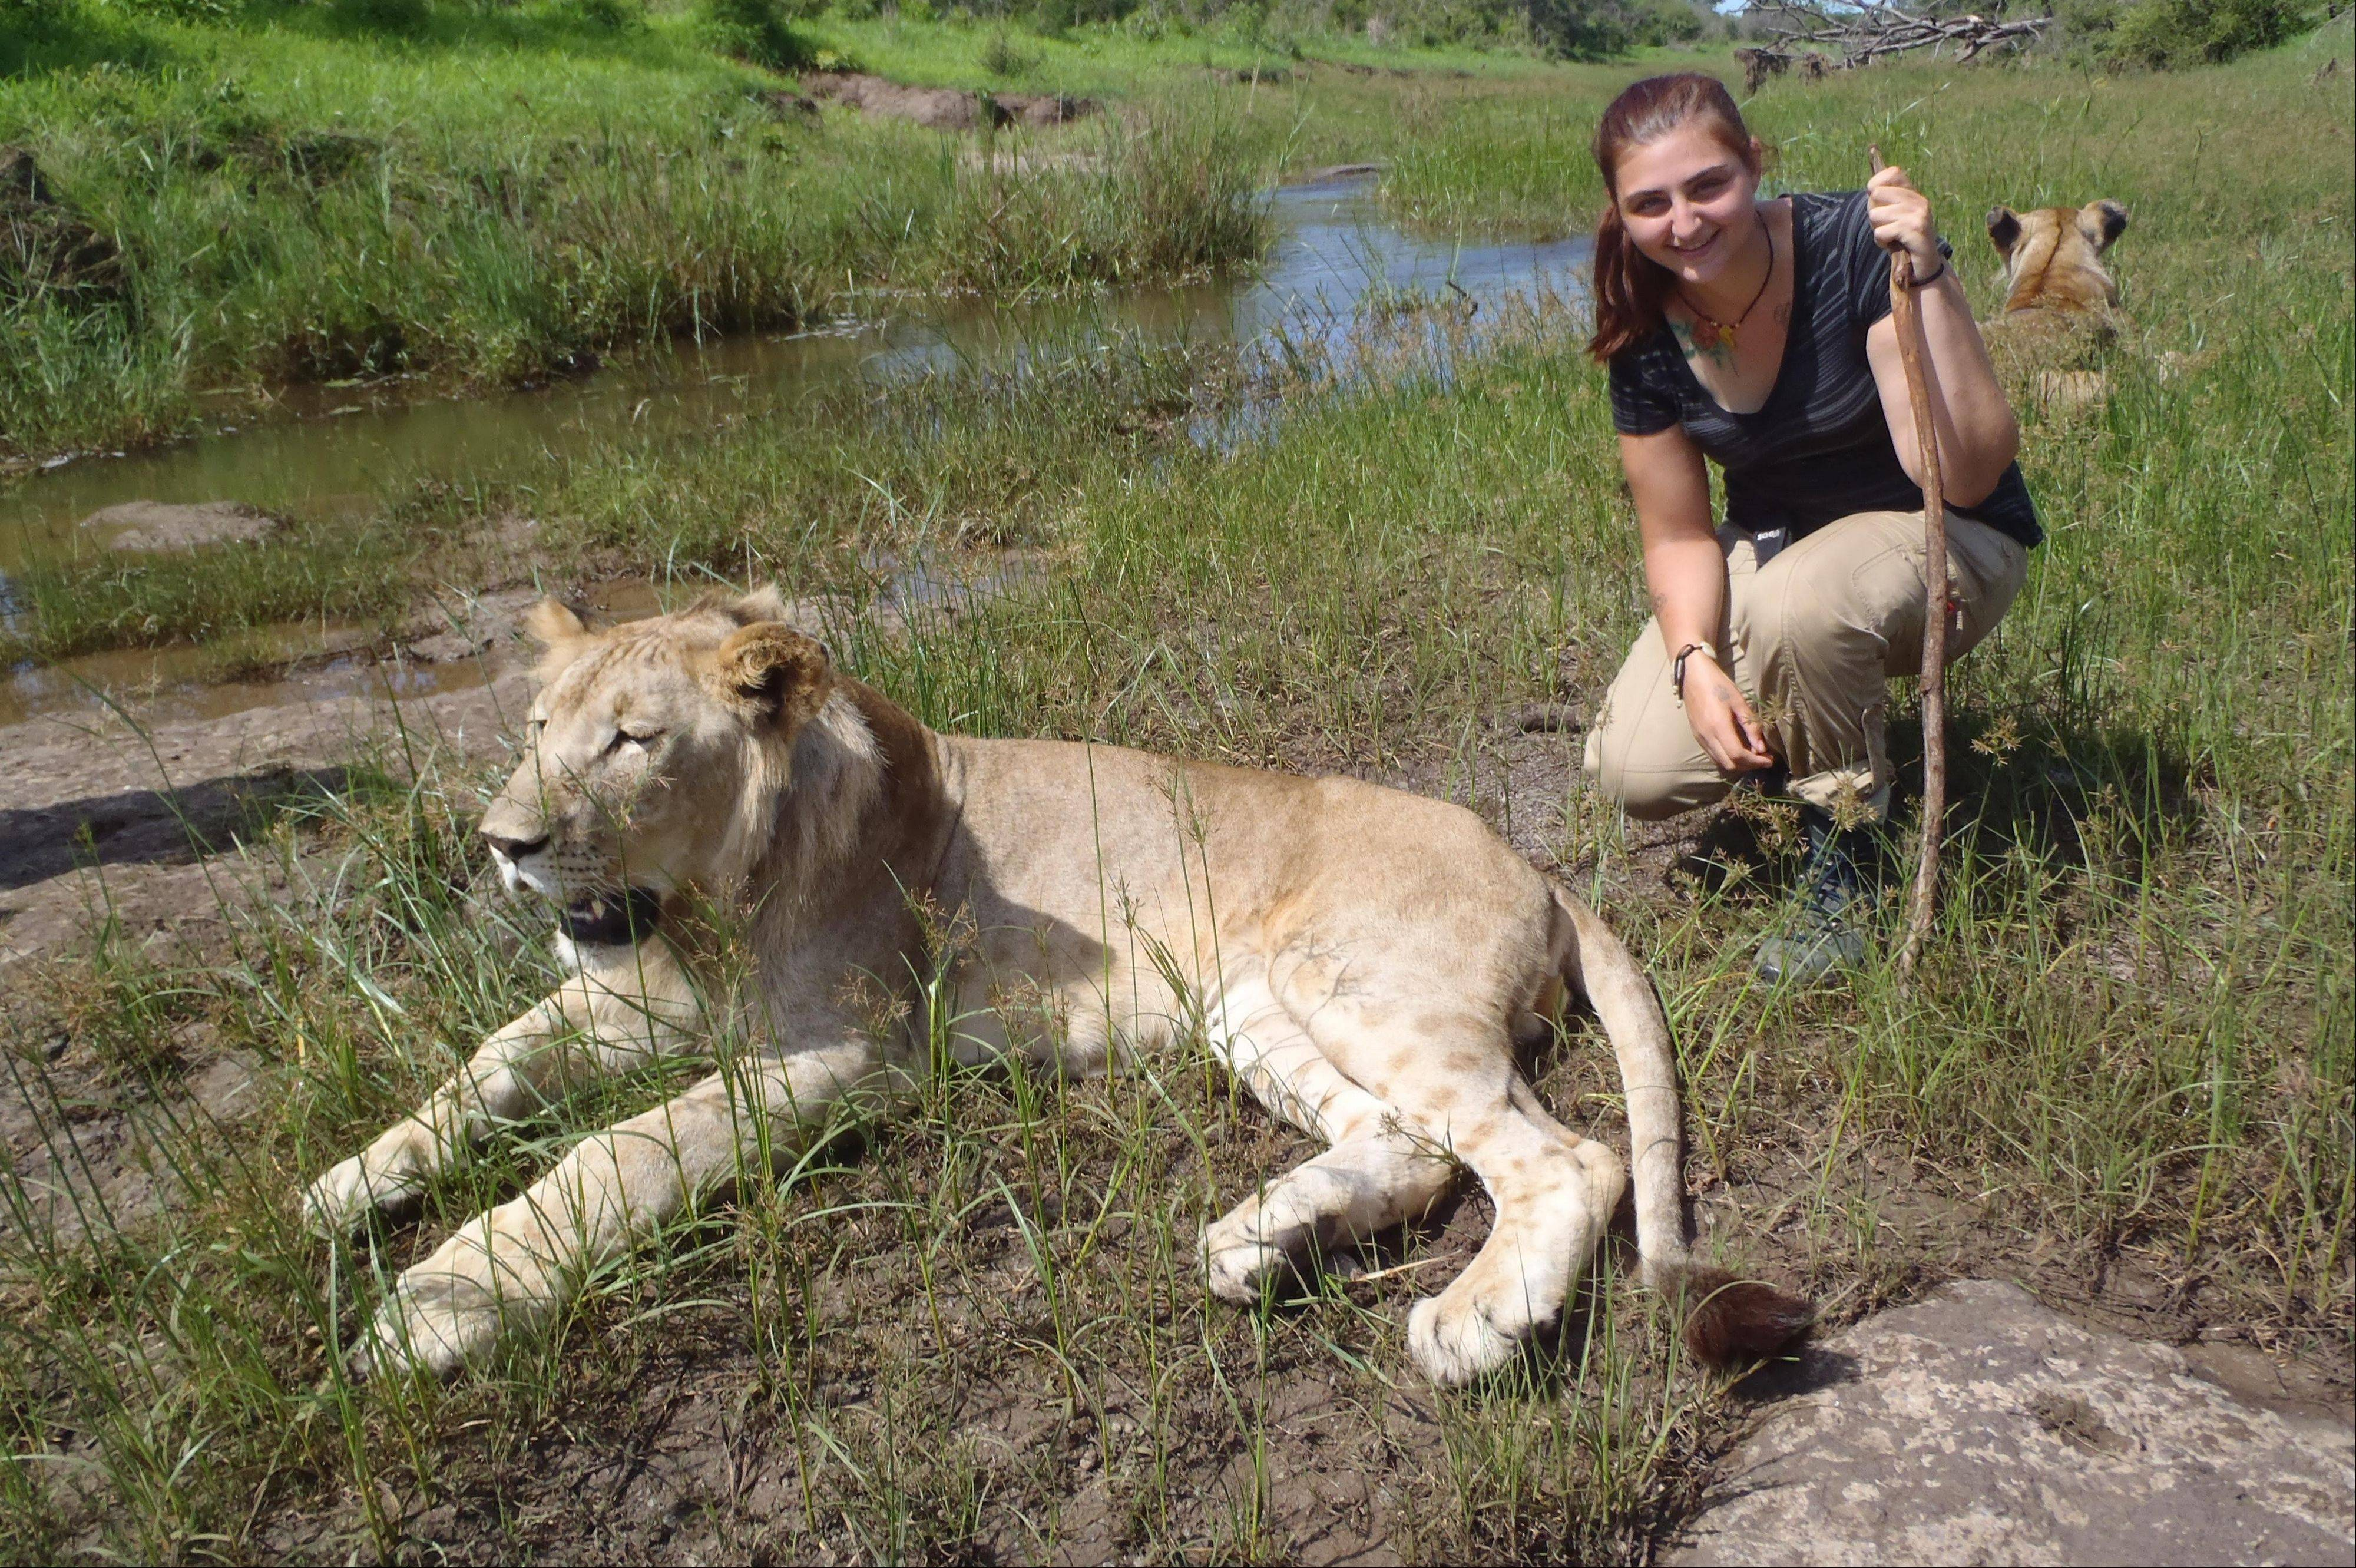 Dana de Grazia helped raise lion cubs as part of her work.